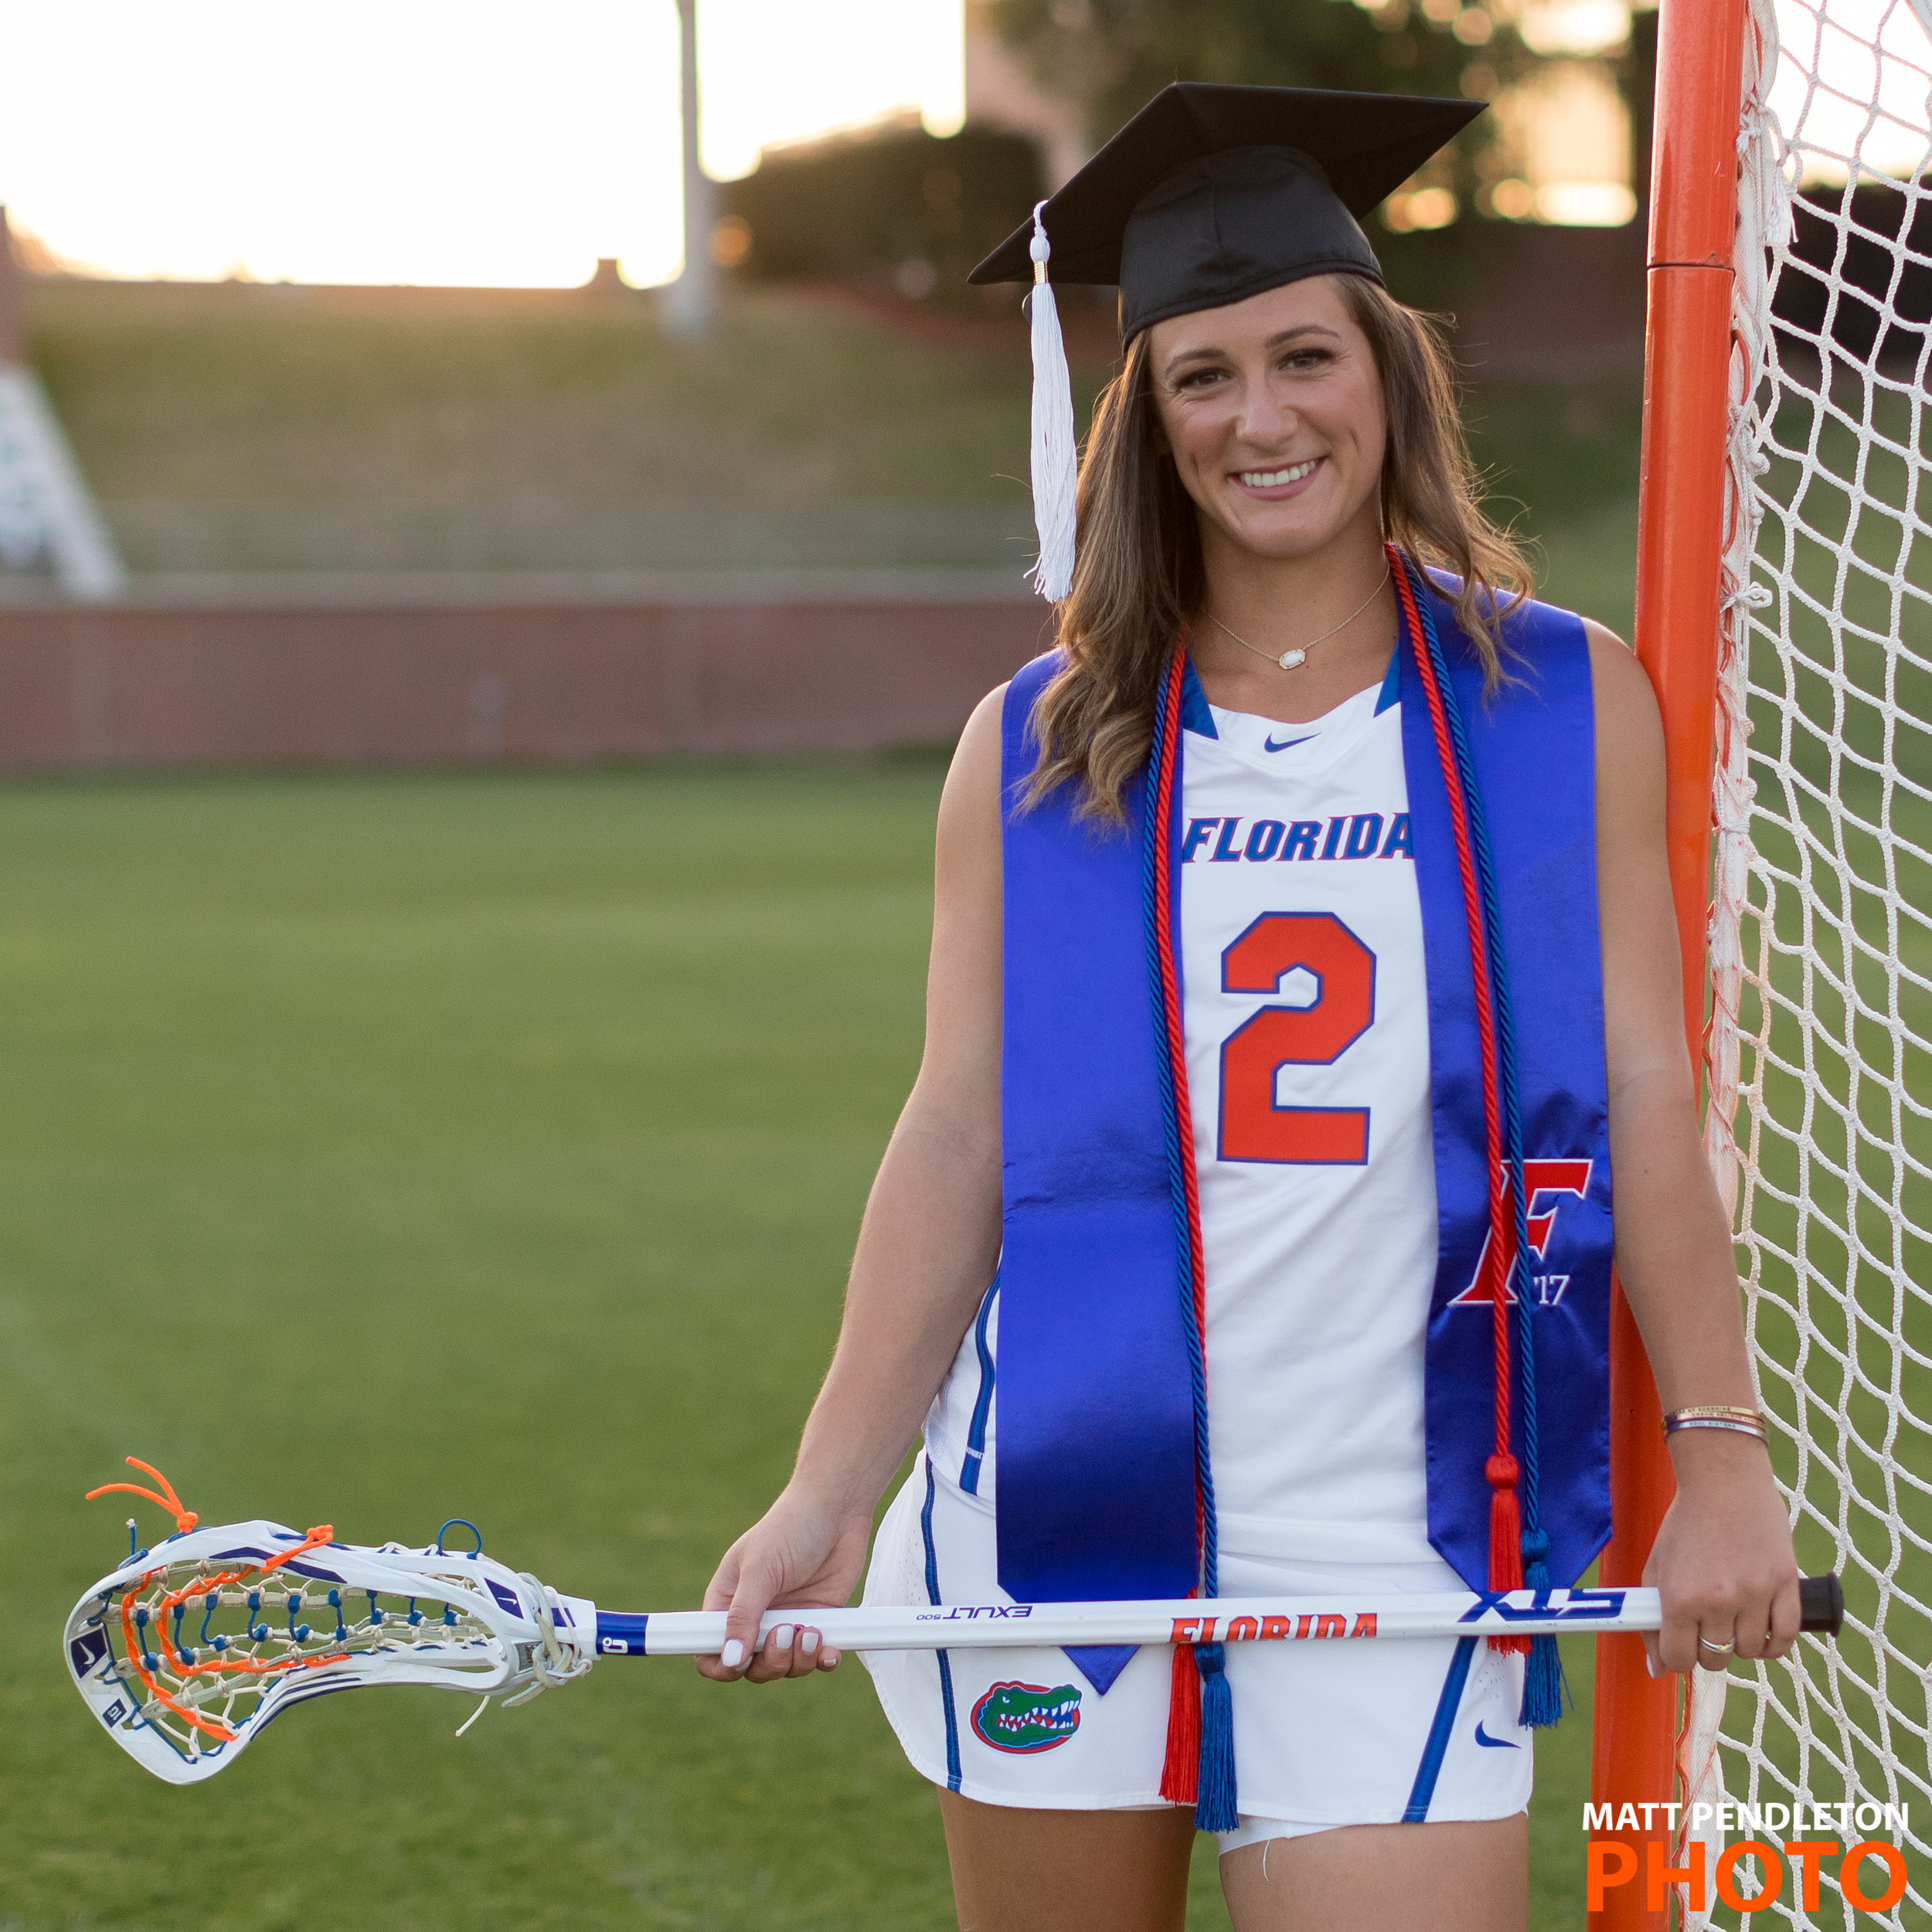 Grad photo session featuring Sammi Burgess on Wednesday, April 26, 2017 at Donald R. Dizney Stadium in Gainesville, FL / Photo by Matt Pendleton for Matt Pendleton Photography (mattpendleton.com)